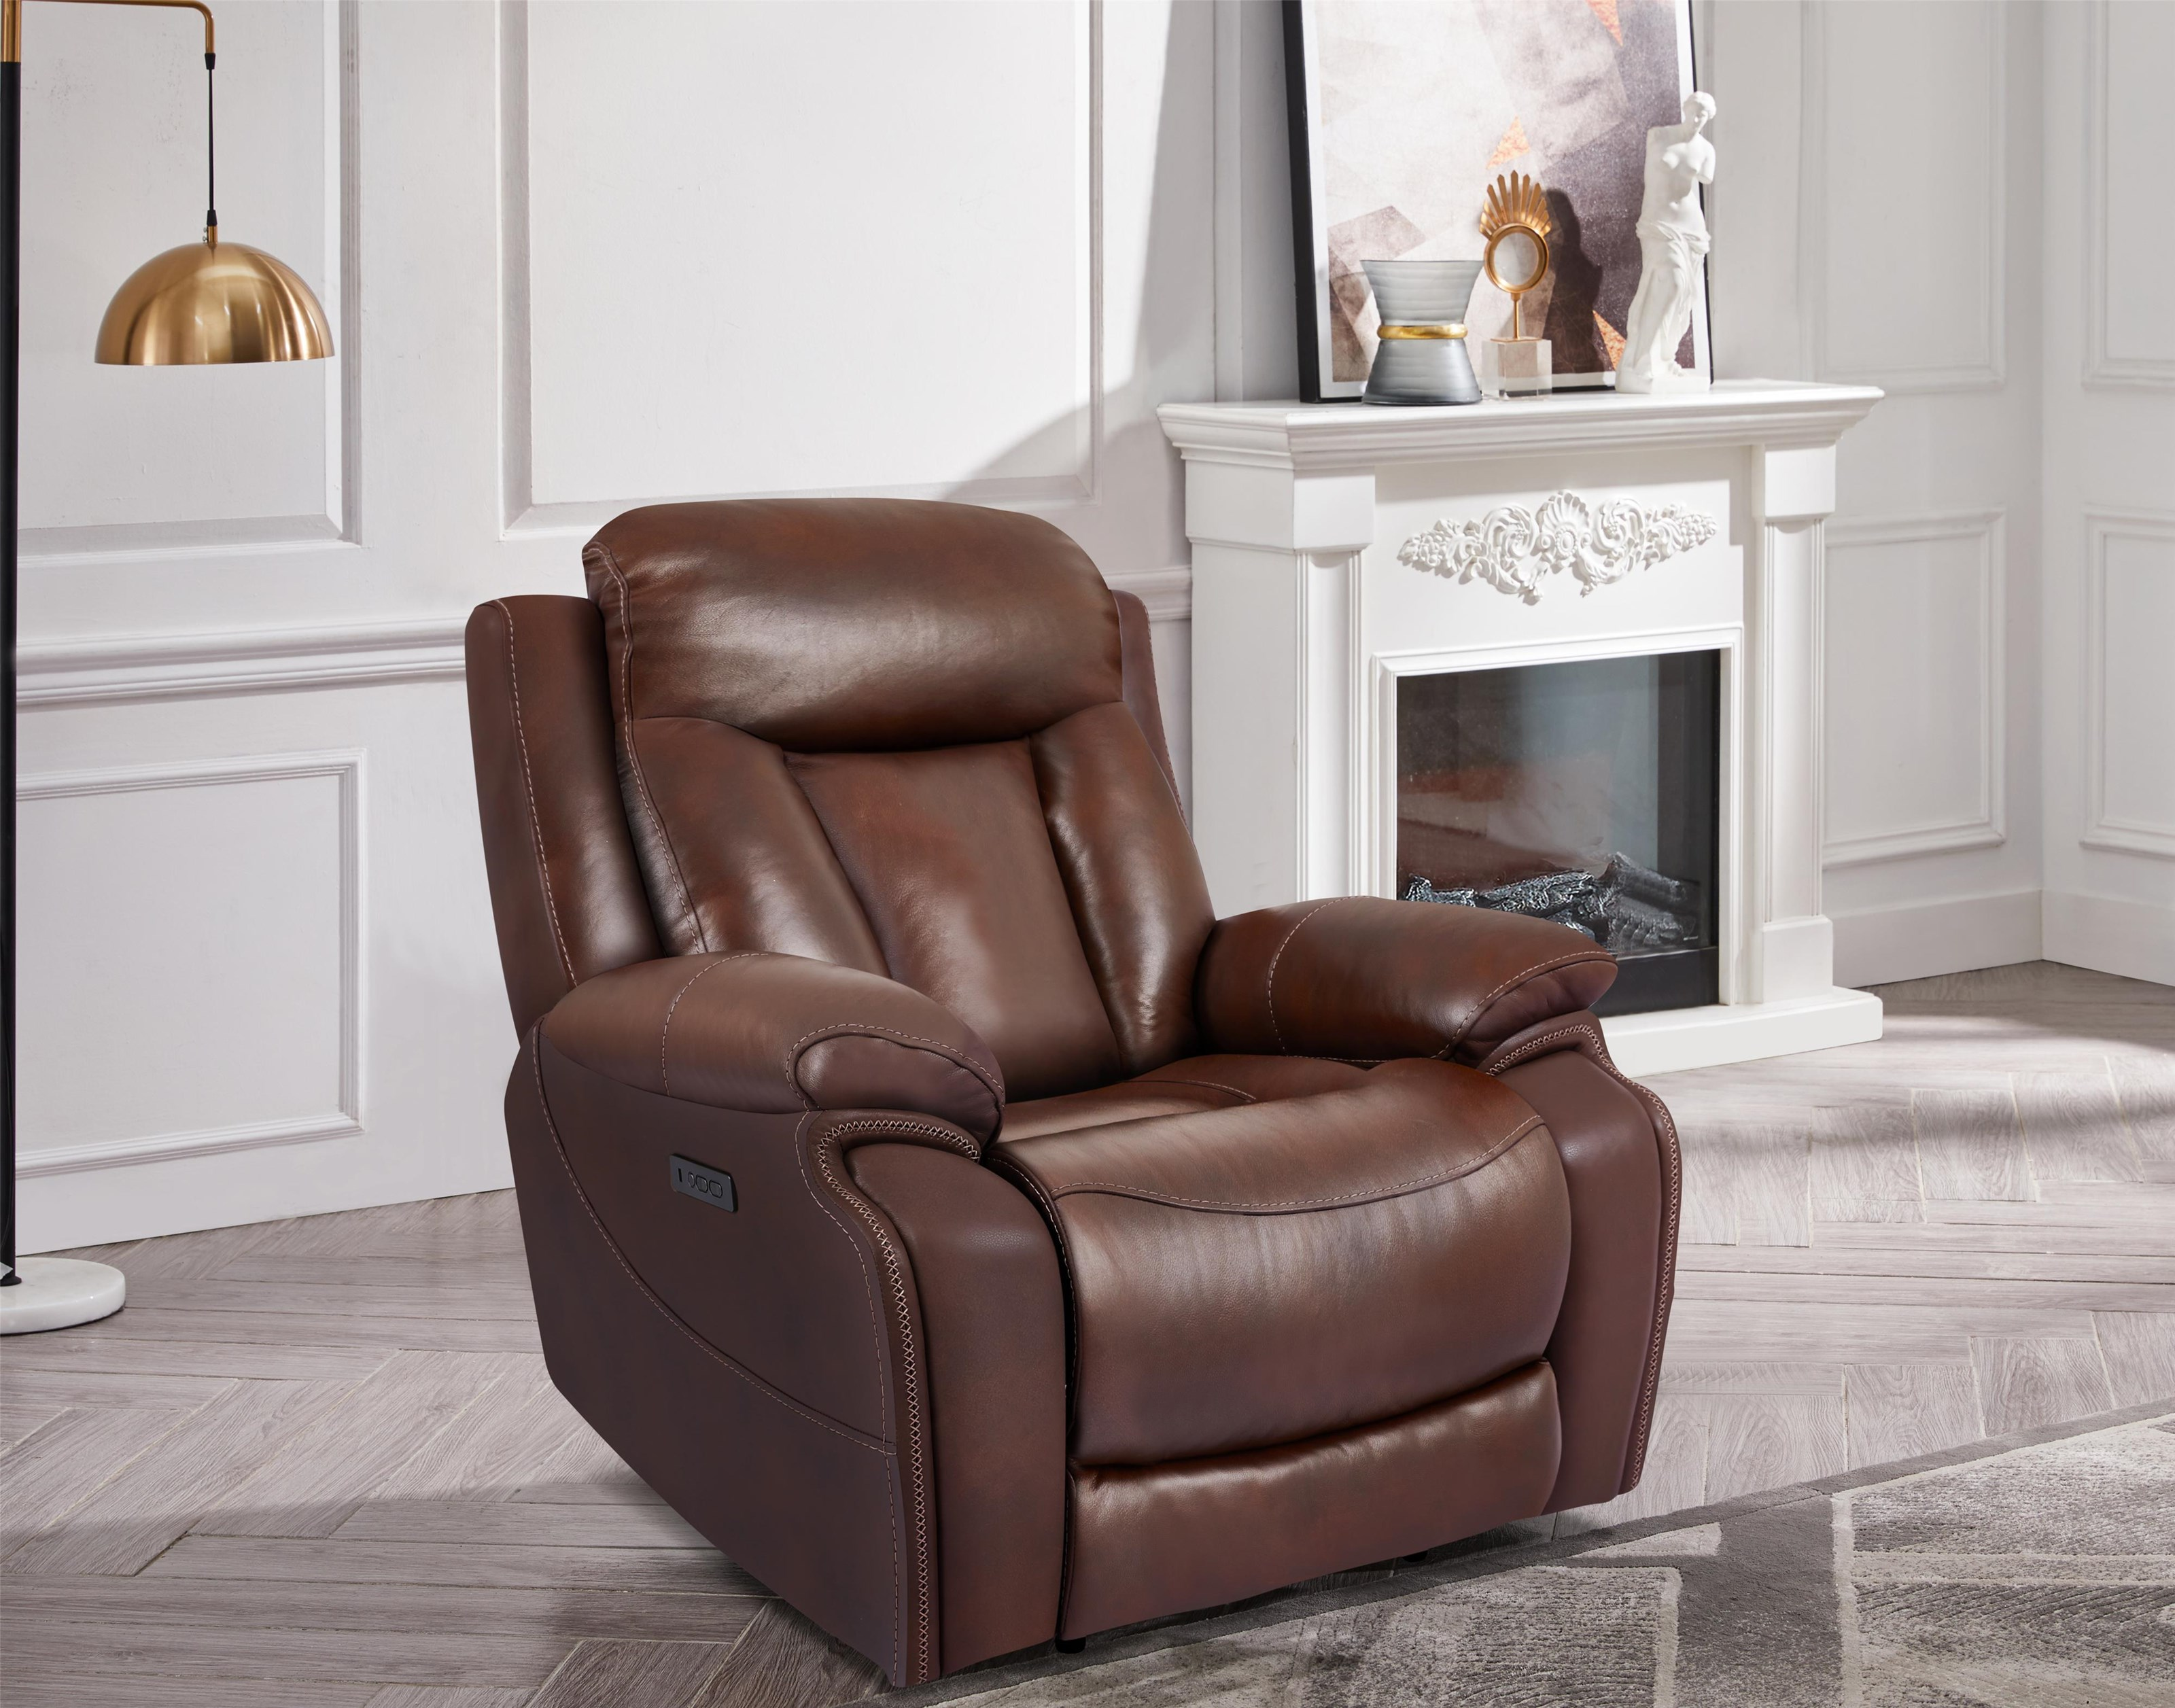 70075 Power Recliner with Power Headrest by Cheers at Furniture Fair - North Carolina